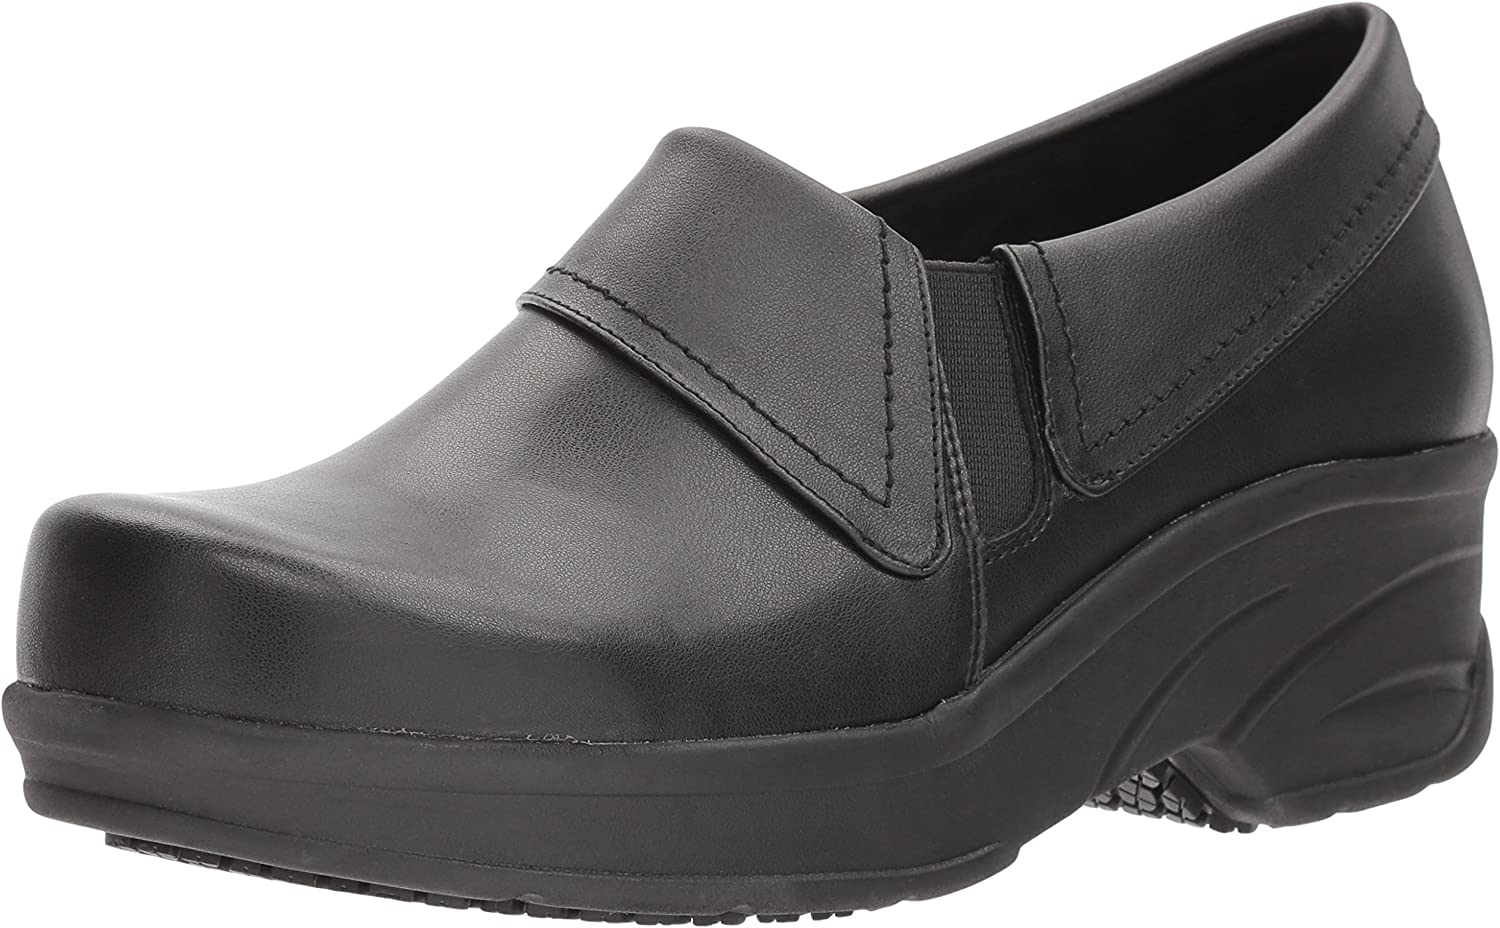 Easy Works Women's Assist Health Care Professional shoes